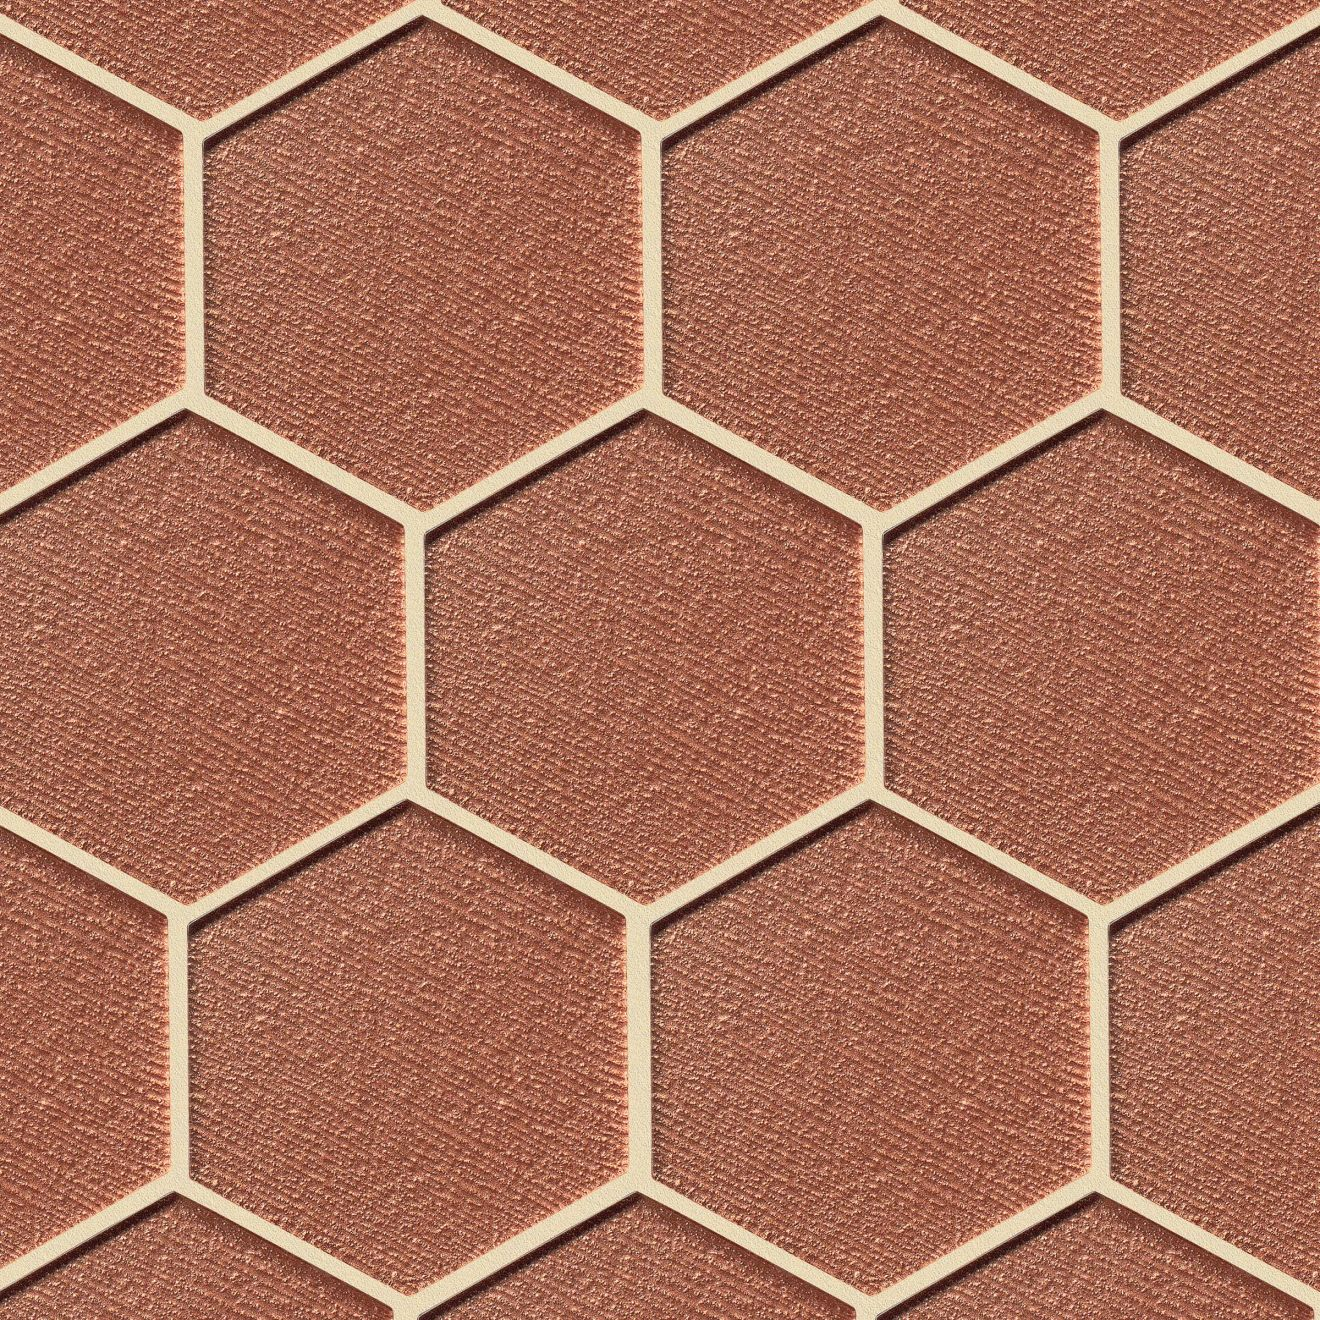 """Verve 4-7/8"""" x 5-5/8"""" Wall Mosaic in Coral Spice"""